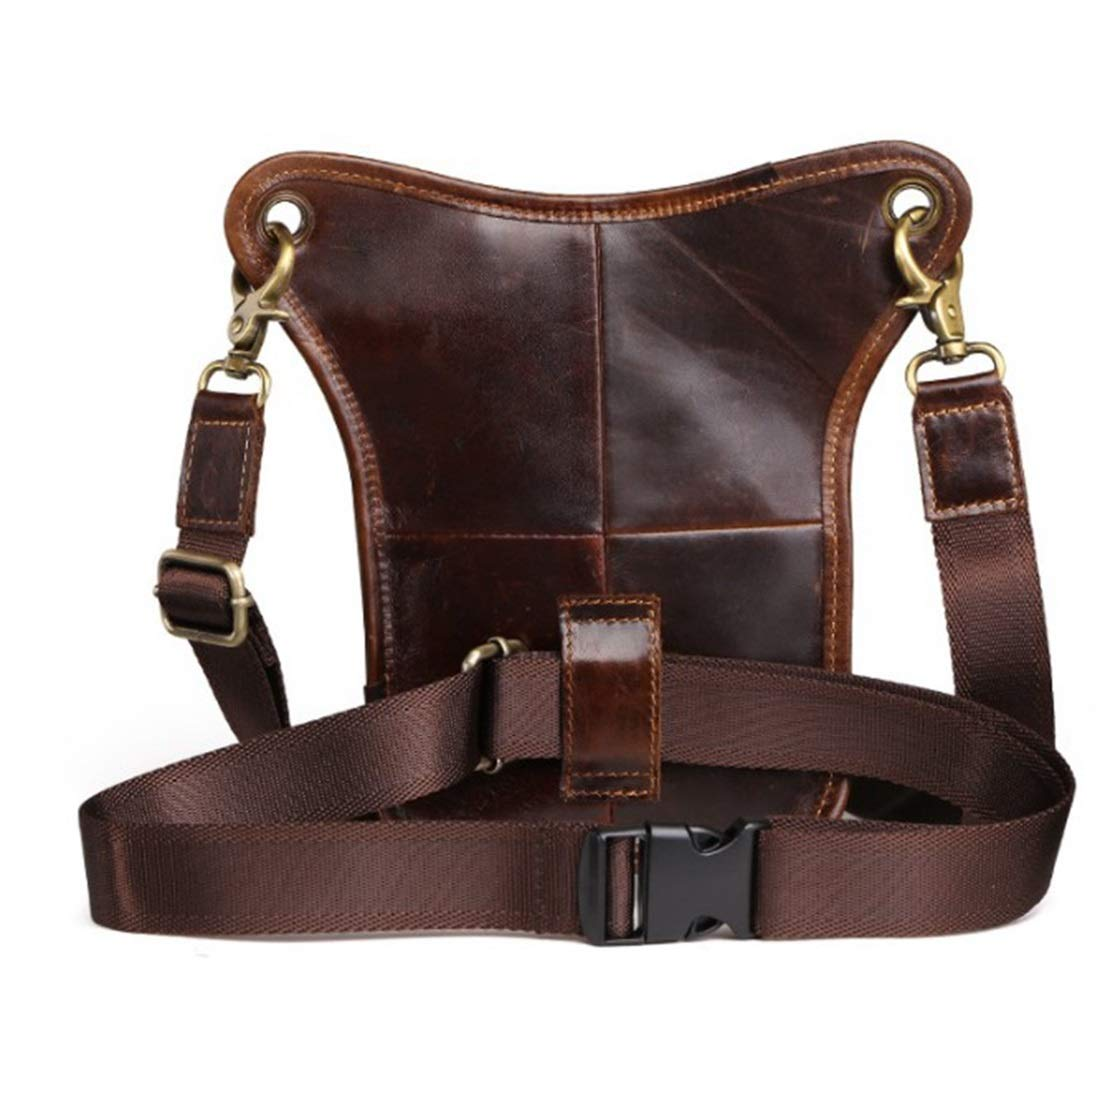 Color : Oil Wax Brown RABILTY Bulk Capacity Crazy Horse Leather Waist Bag Crossbody Fanny Pack Organizer,24164 Cowhide Travel Money Belt RFID Blocking